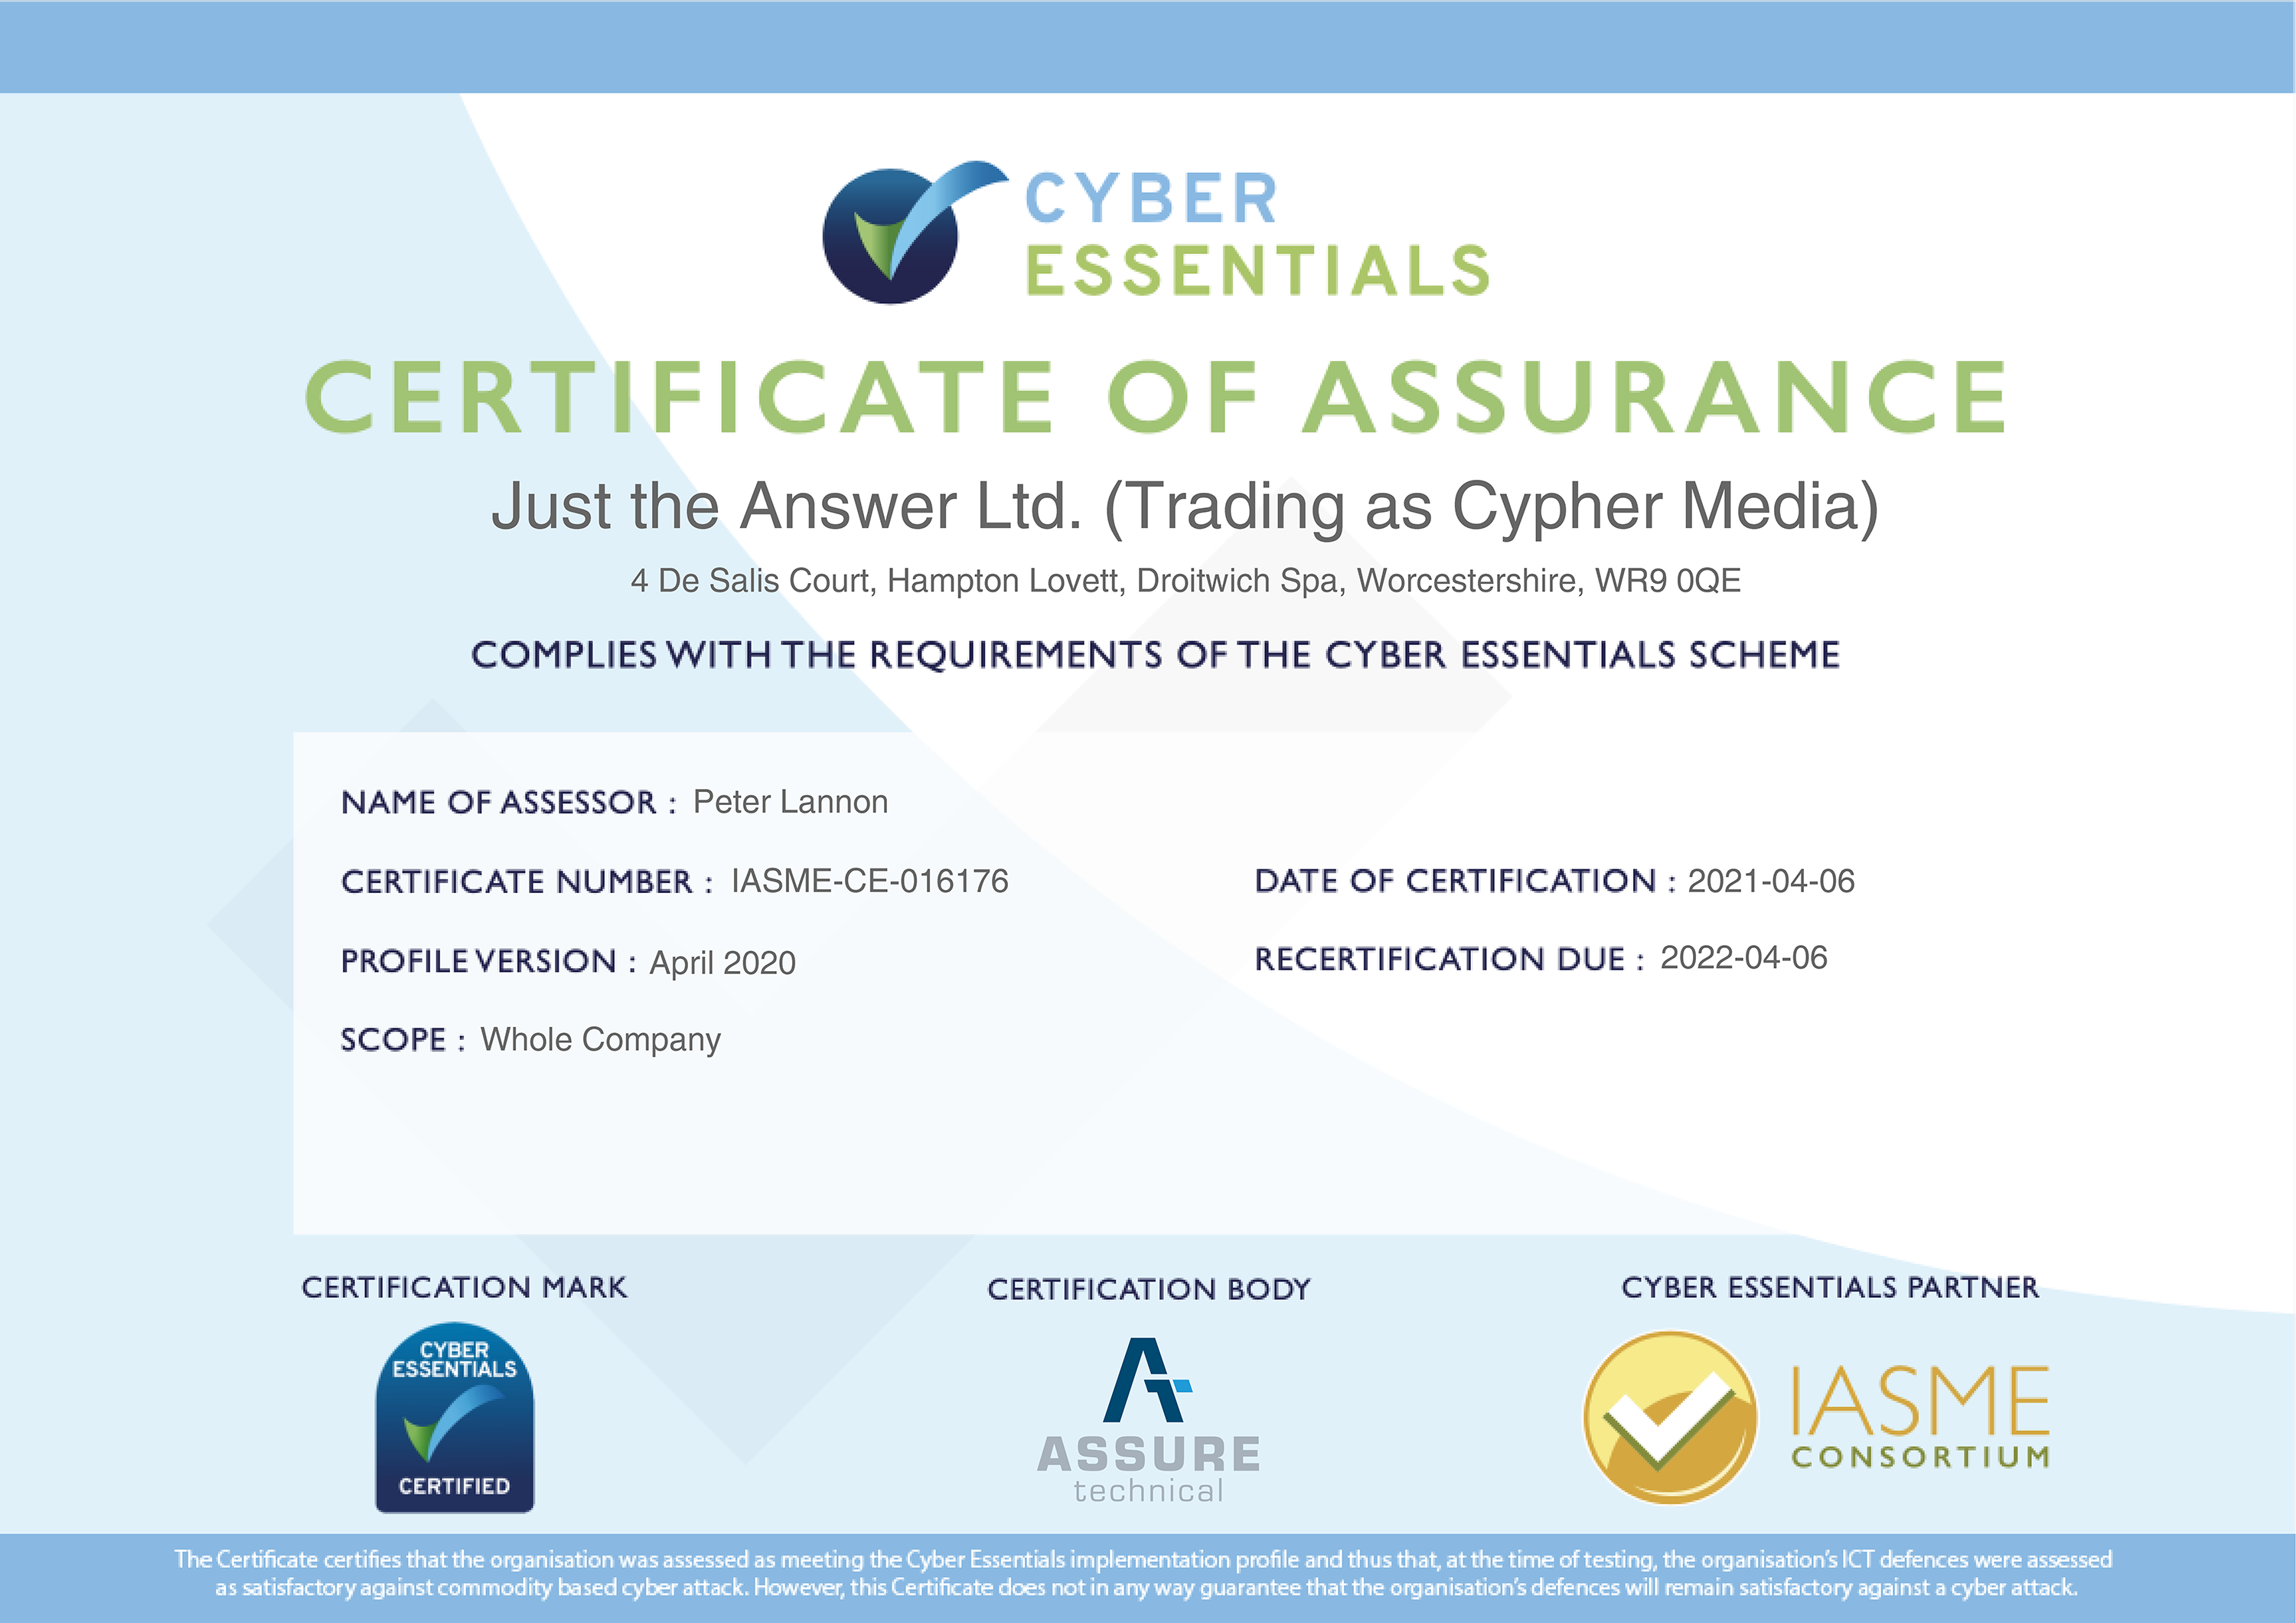 Cyber Essentials Recertification